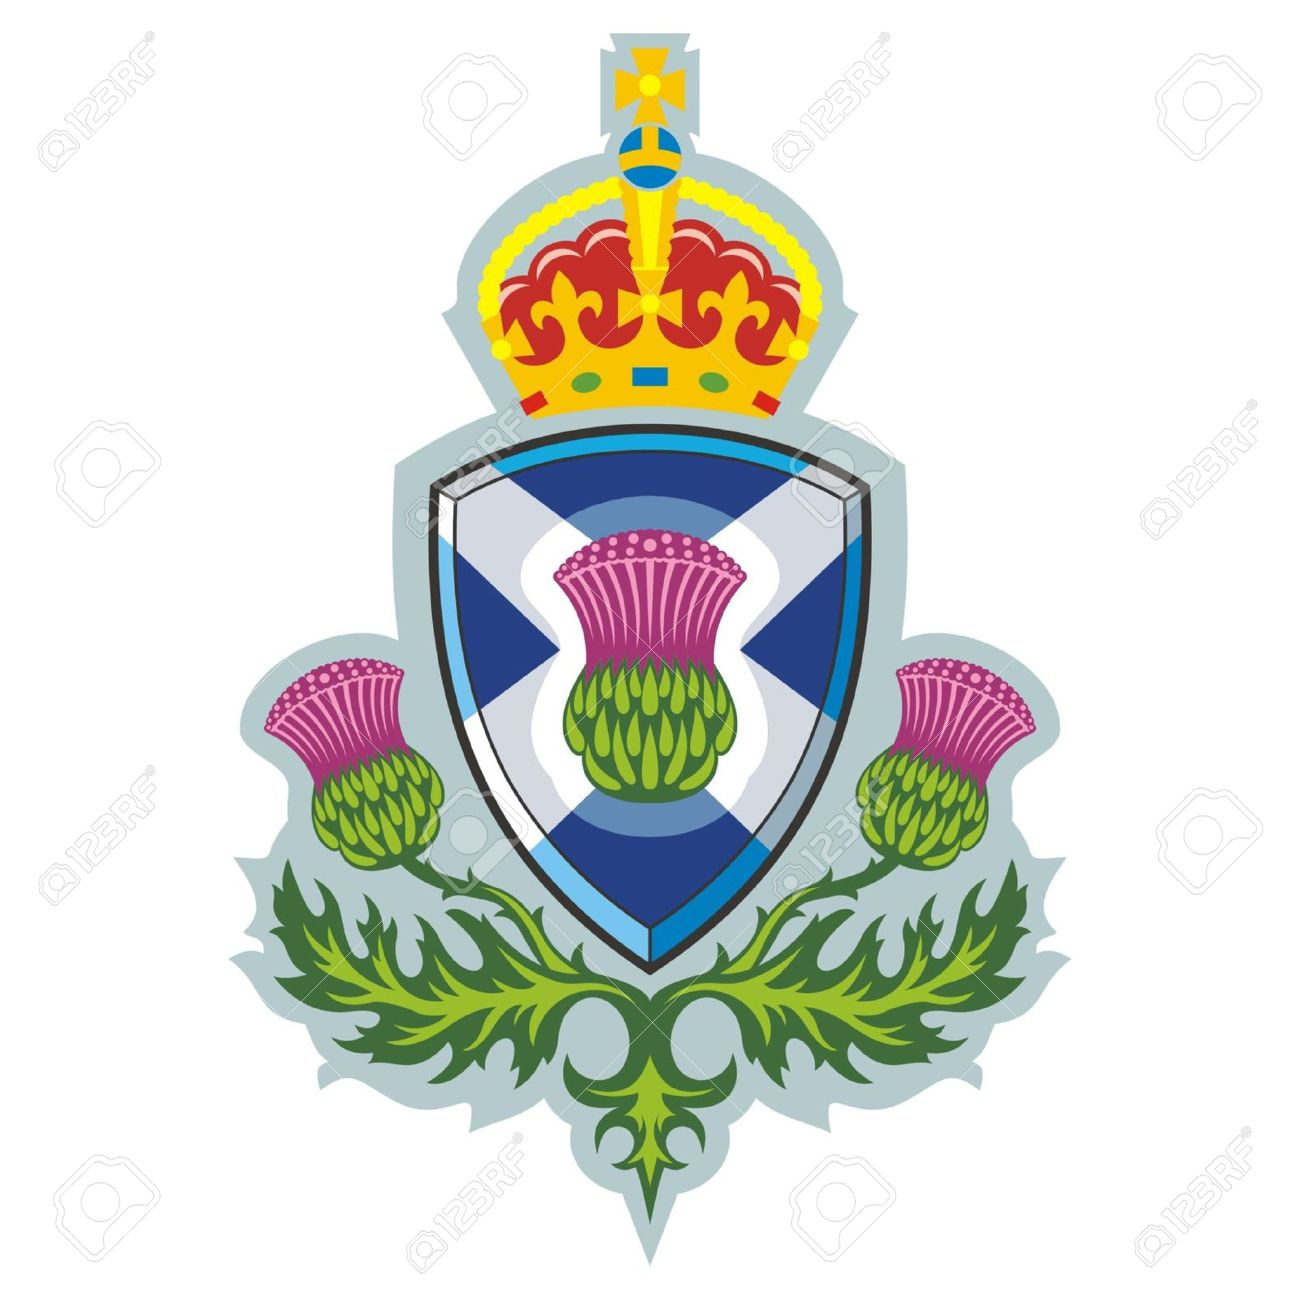 Scottish thistle symbol of scotland vector royalty free cliparts scottish thistle symbol of scotland vector stock vector 24805614 buycottarizona Image collections